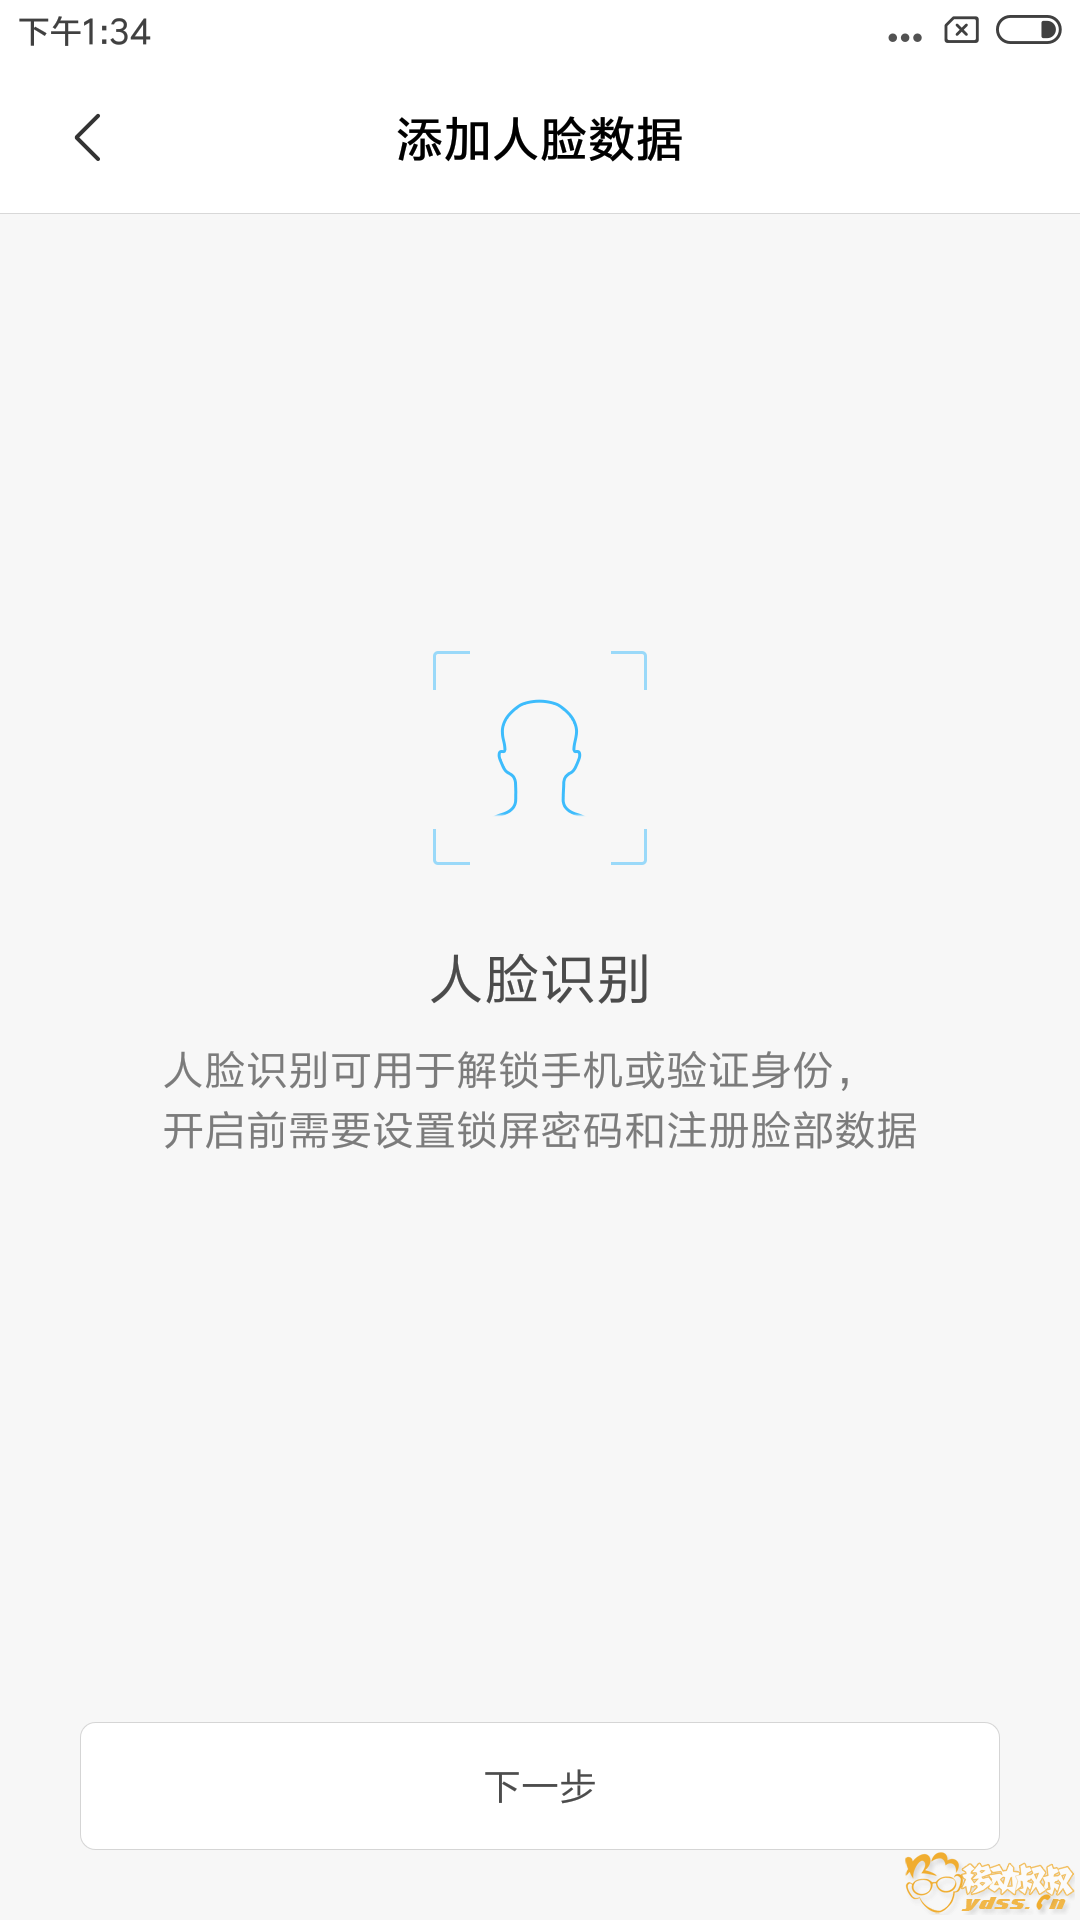 Screenshot_2018-06-14-13-34-52-339_com.android.systemui.png